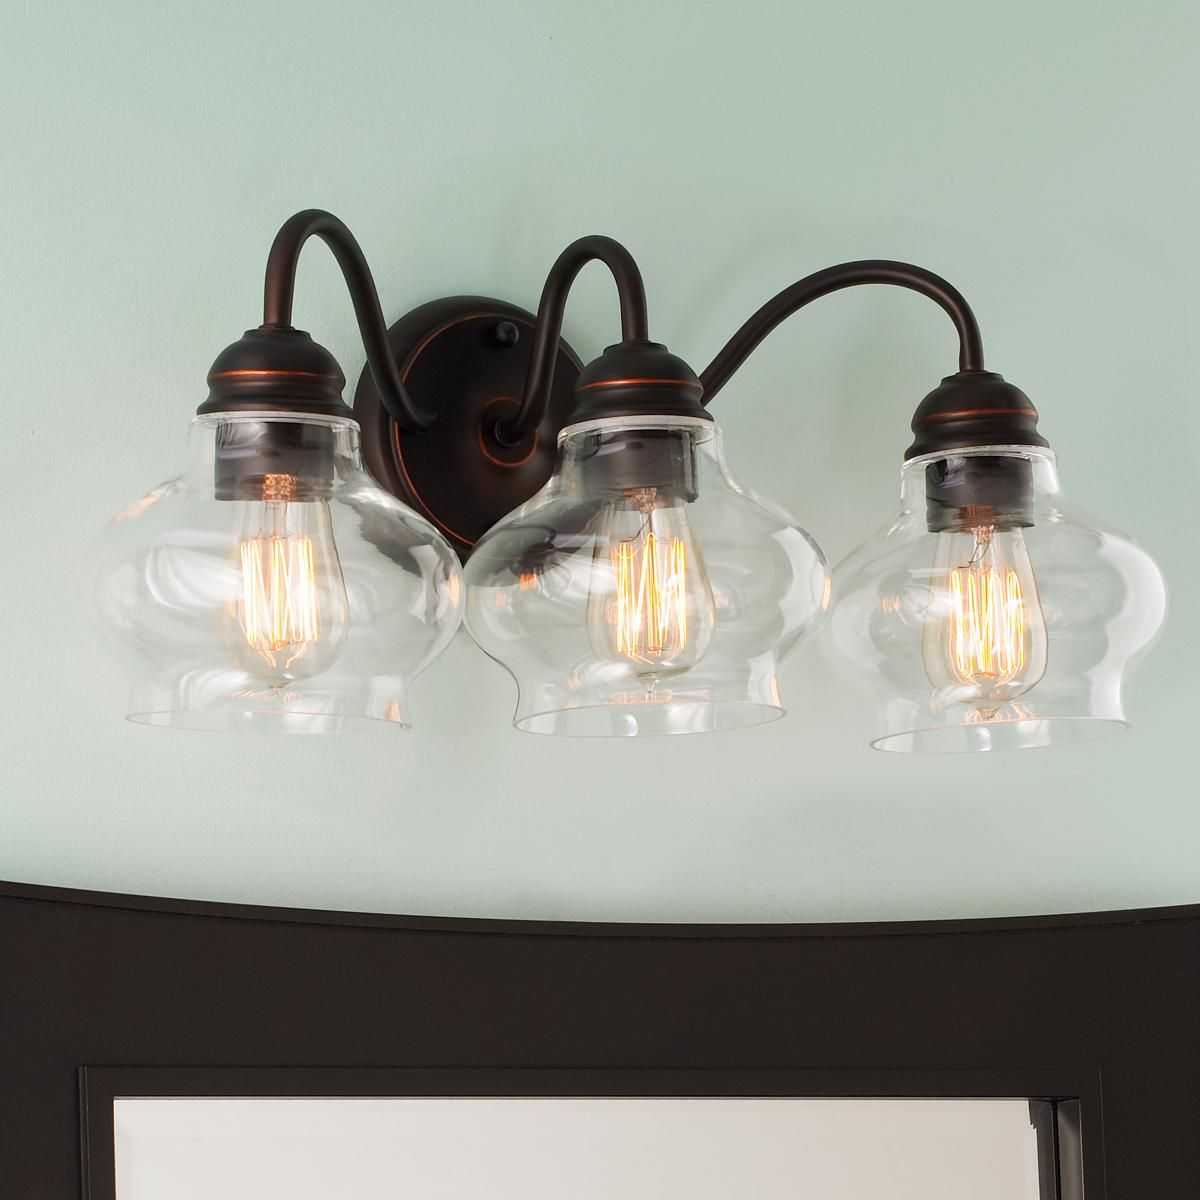 Double Bullet Glass Wall Sconce Glasses, Lights and Chang e 3